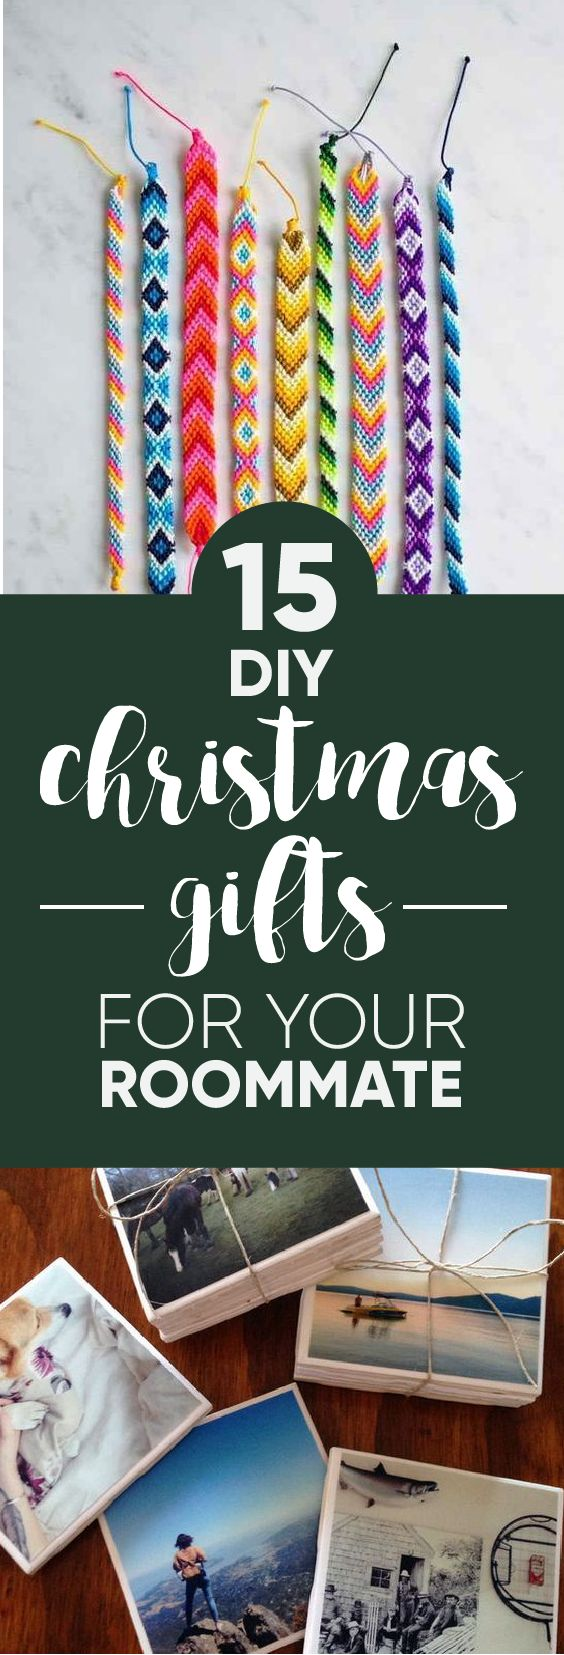 Roommates are the best, which is why they deserve a DIY gift from your heart!